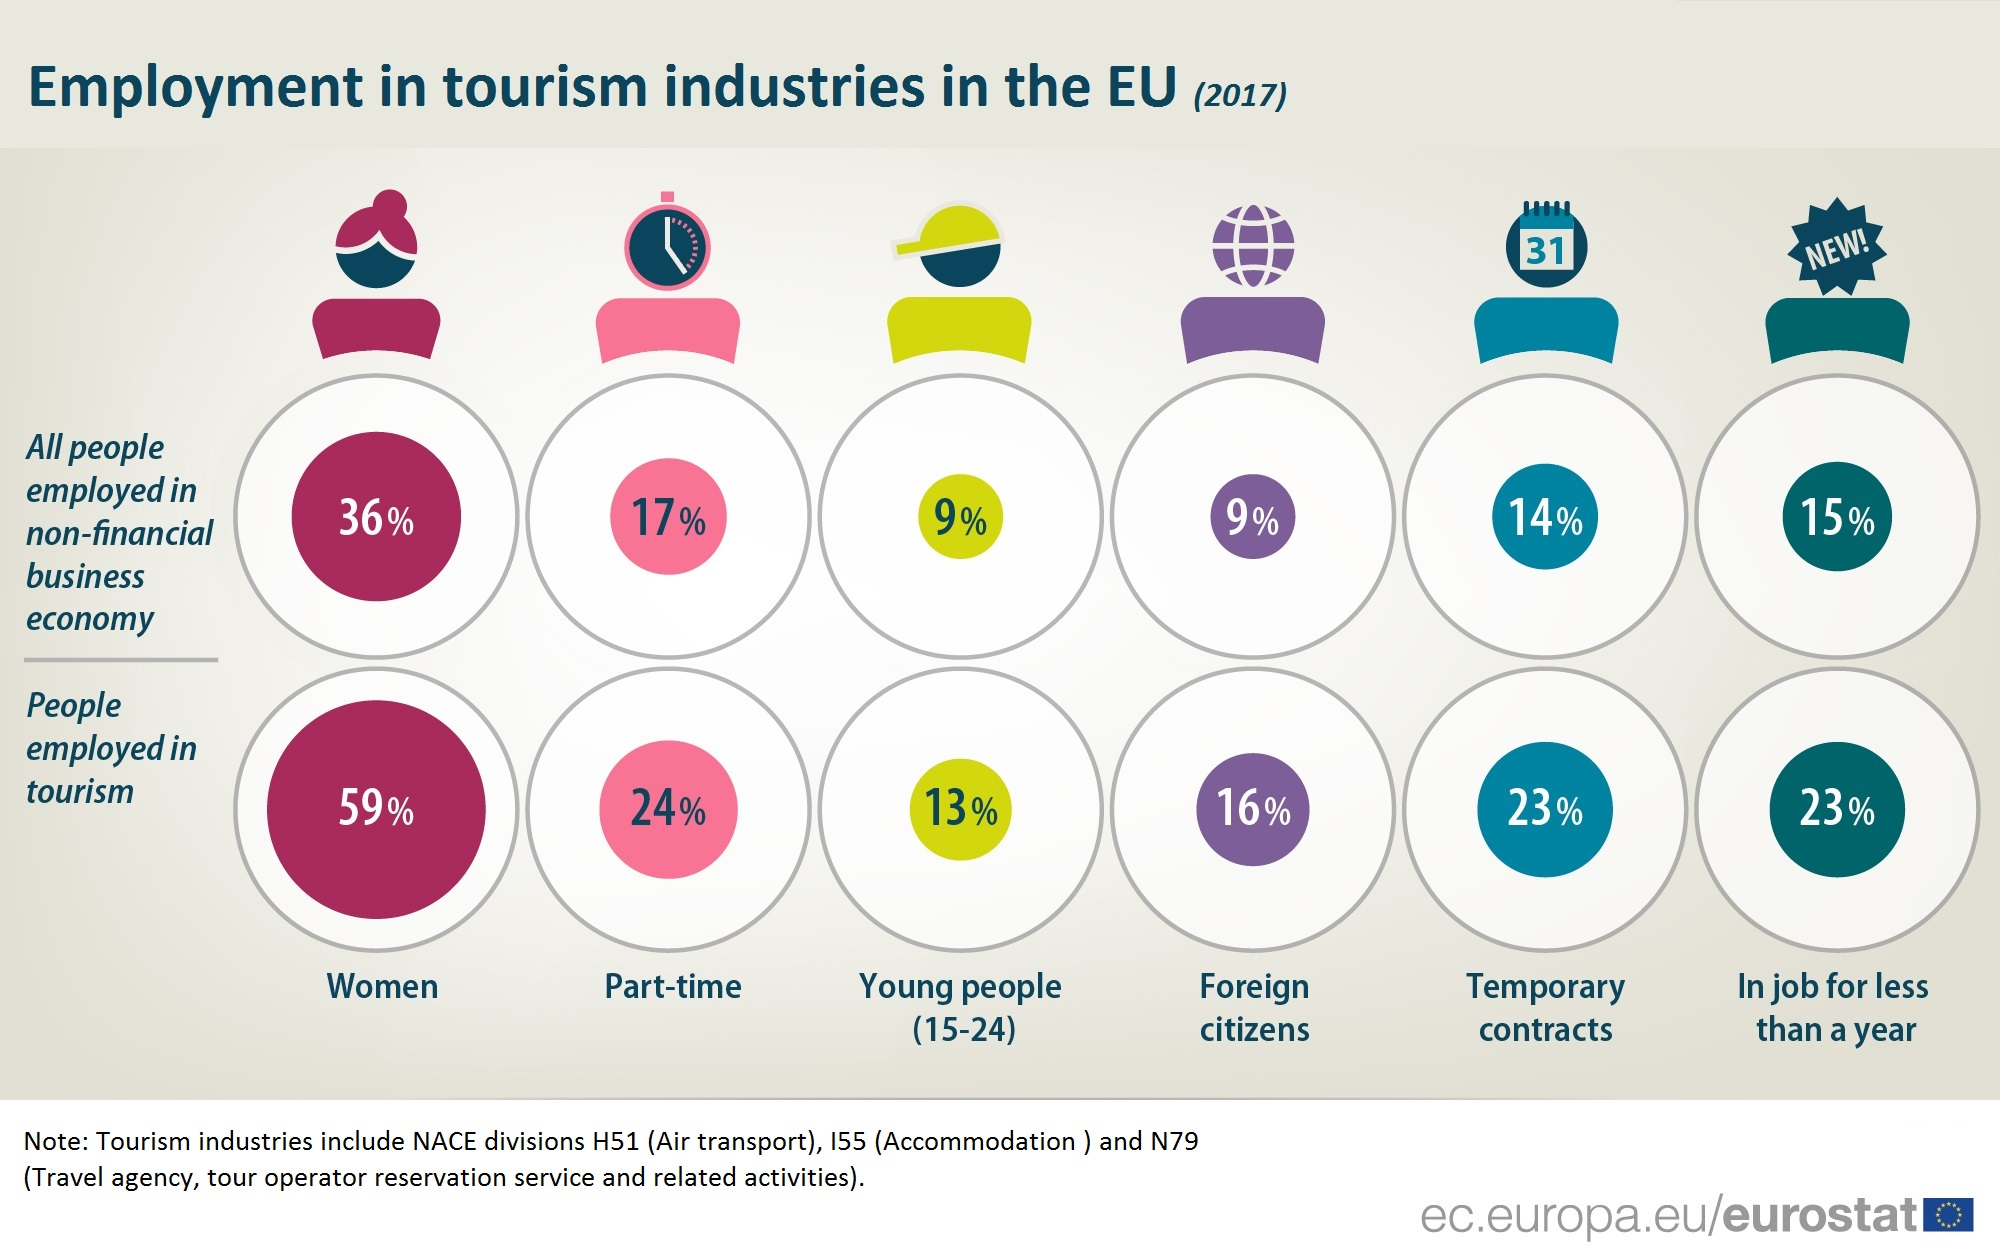 Infographic showing share of tourism employment for different groups of workers in 2017